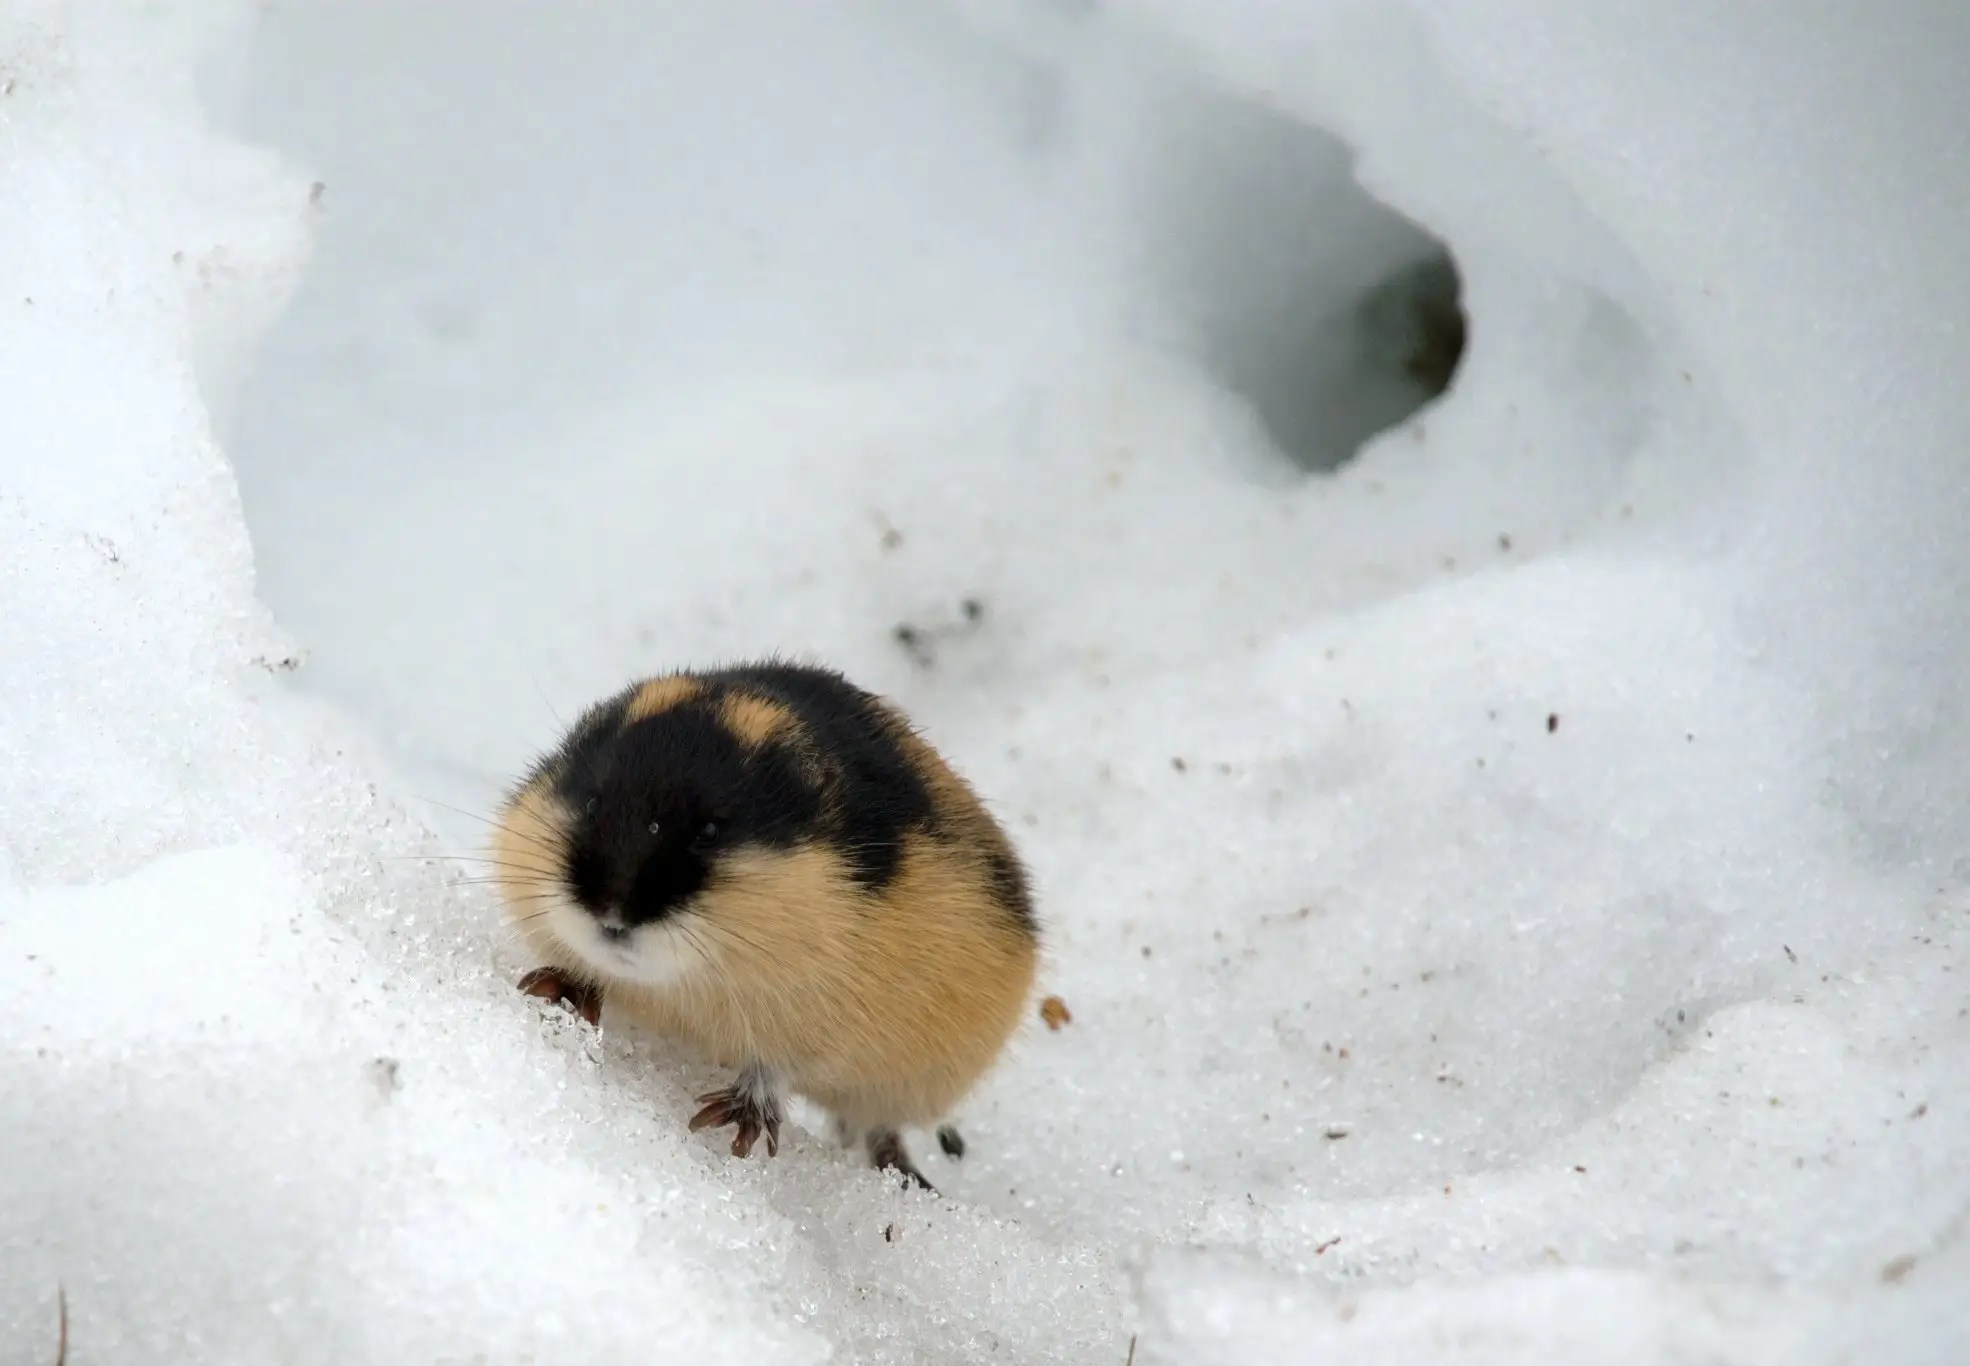 Lemmings do not commit mass suicide. During their migrations they sometimes do fall off cliffs, if they wander to an area they are unfamiliar with.